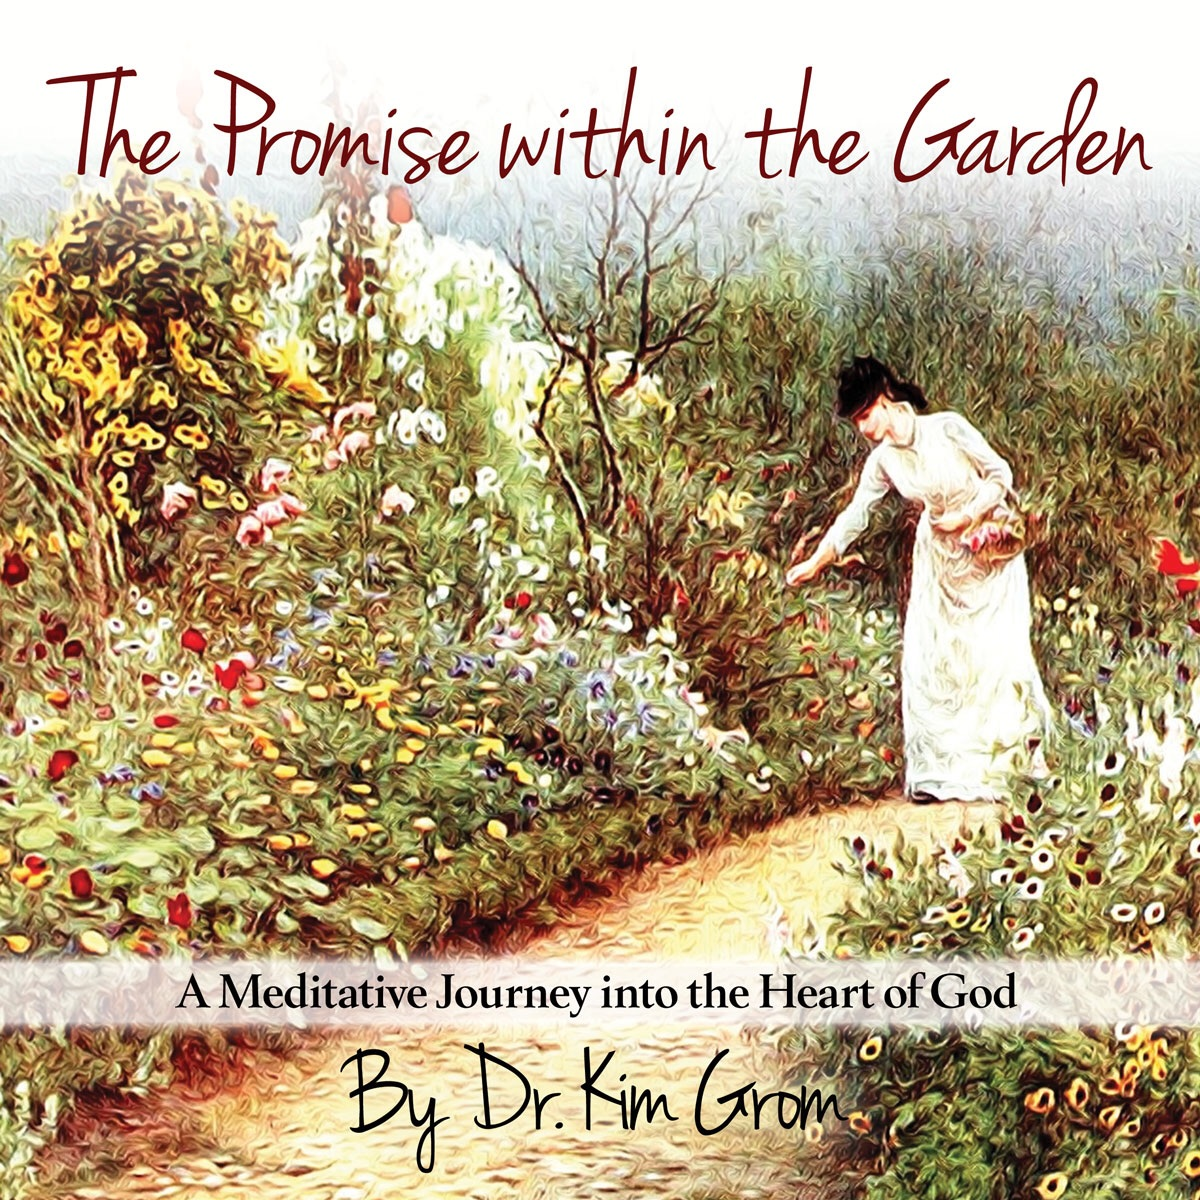 The Promise Within the Garden